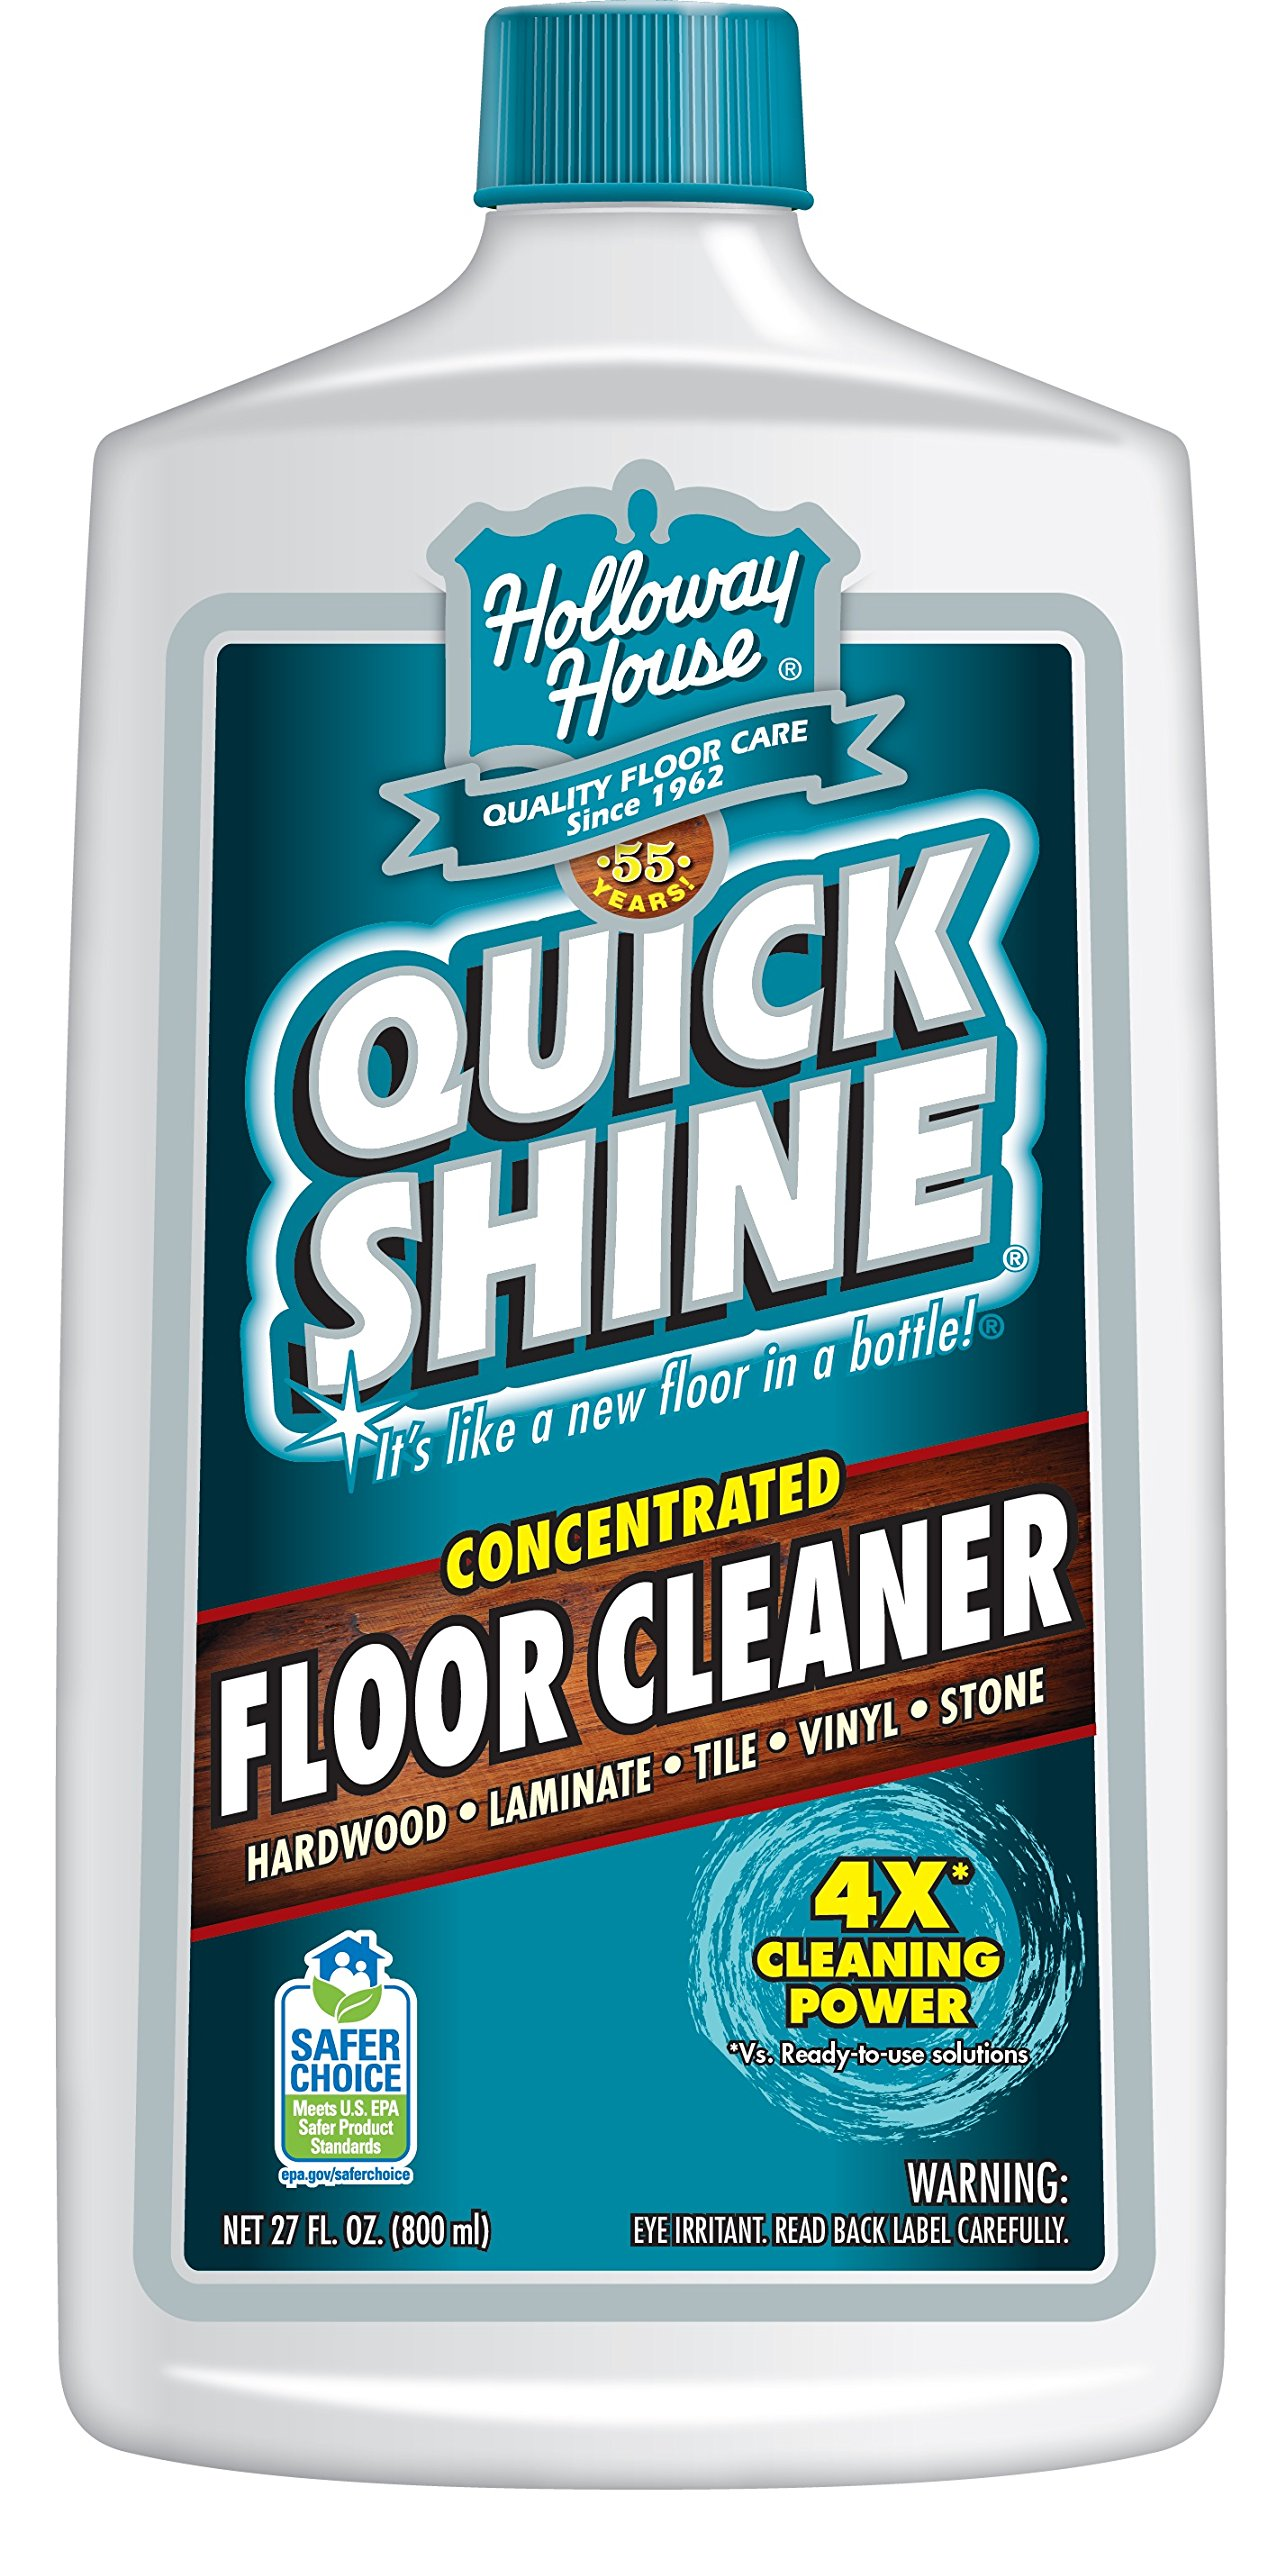 Amazon.com : Quick Shine Concentrated Floor Cleaner : Home & Kitchen